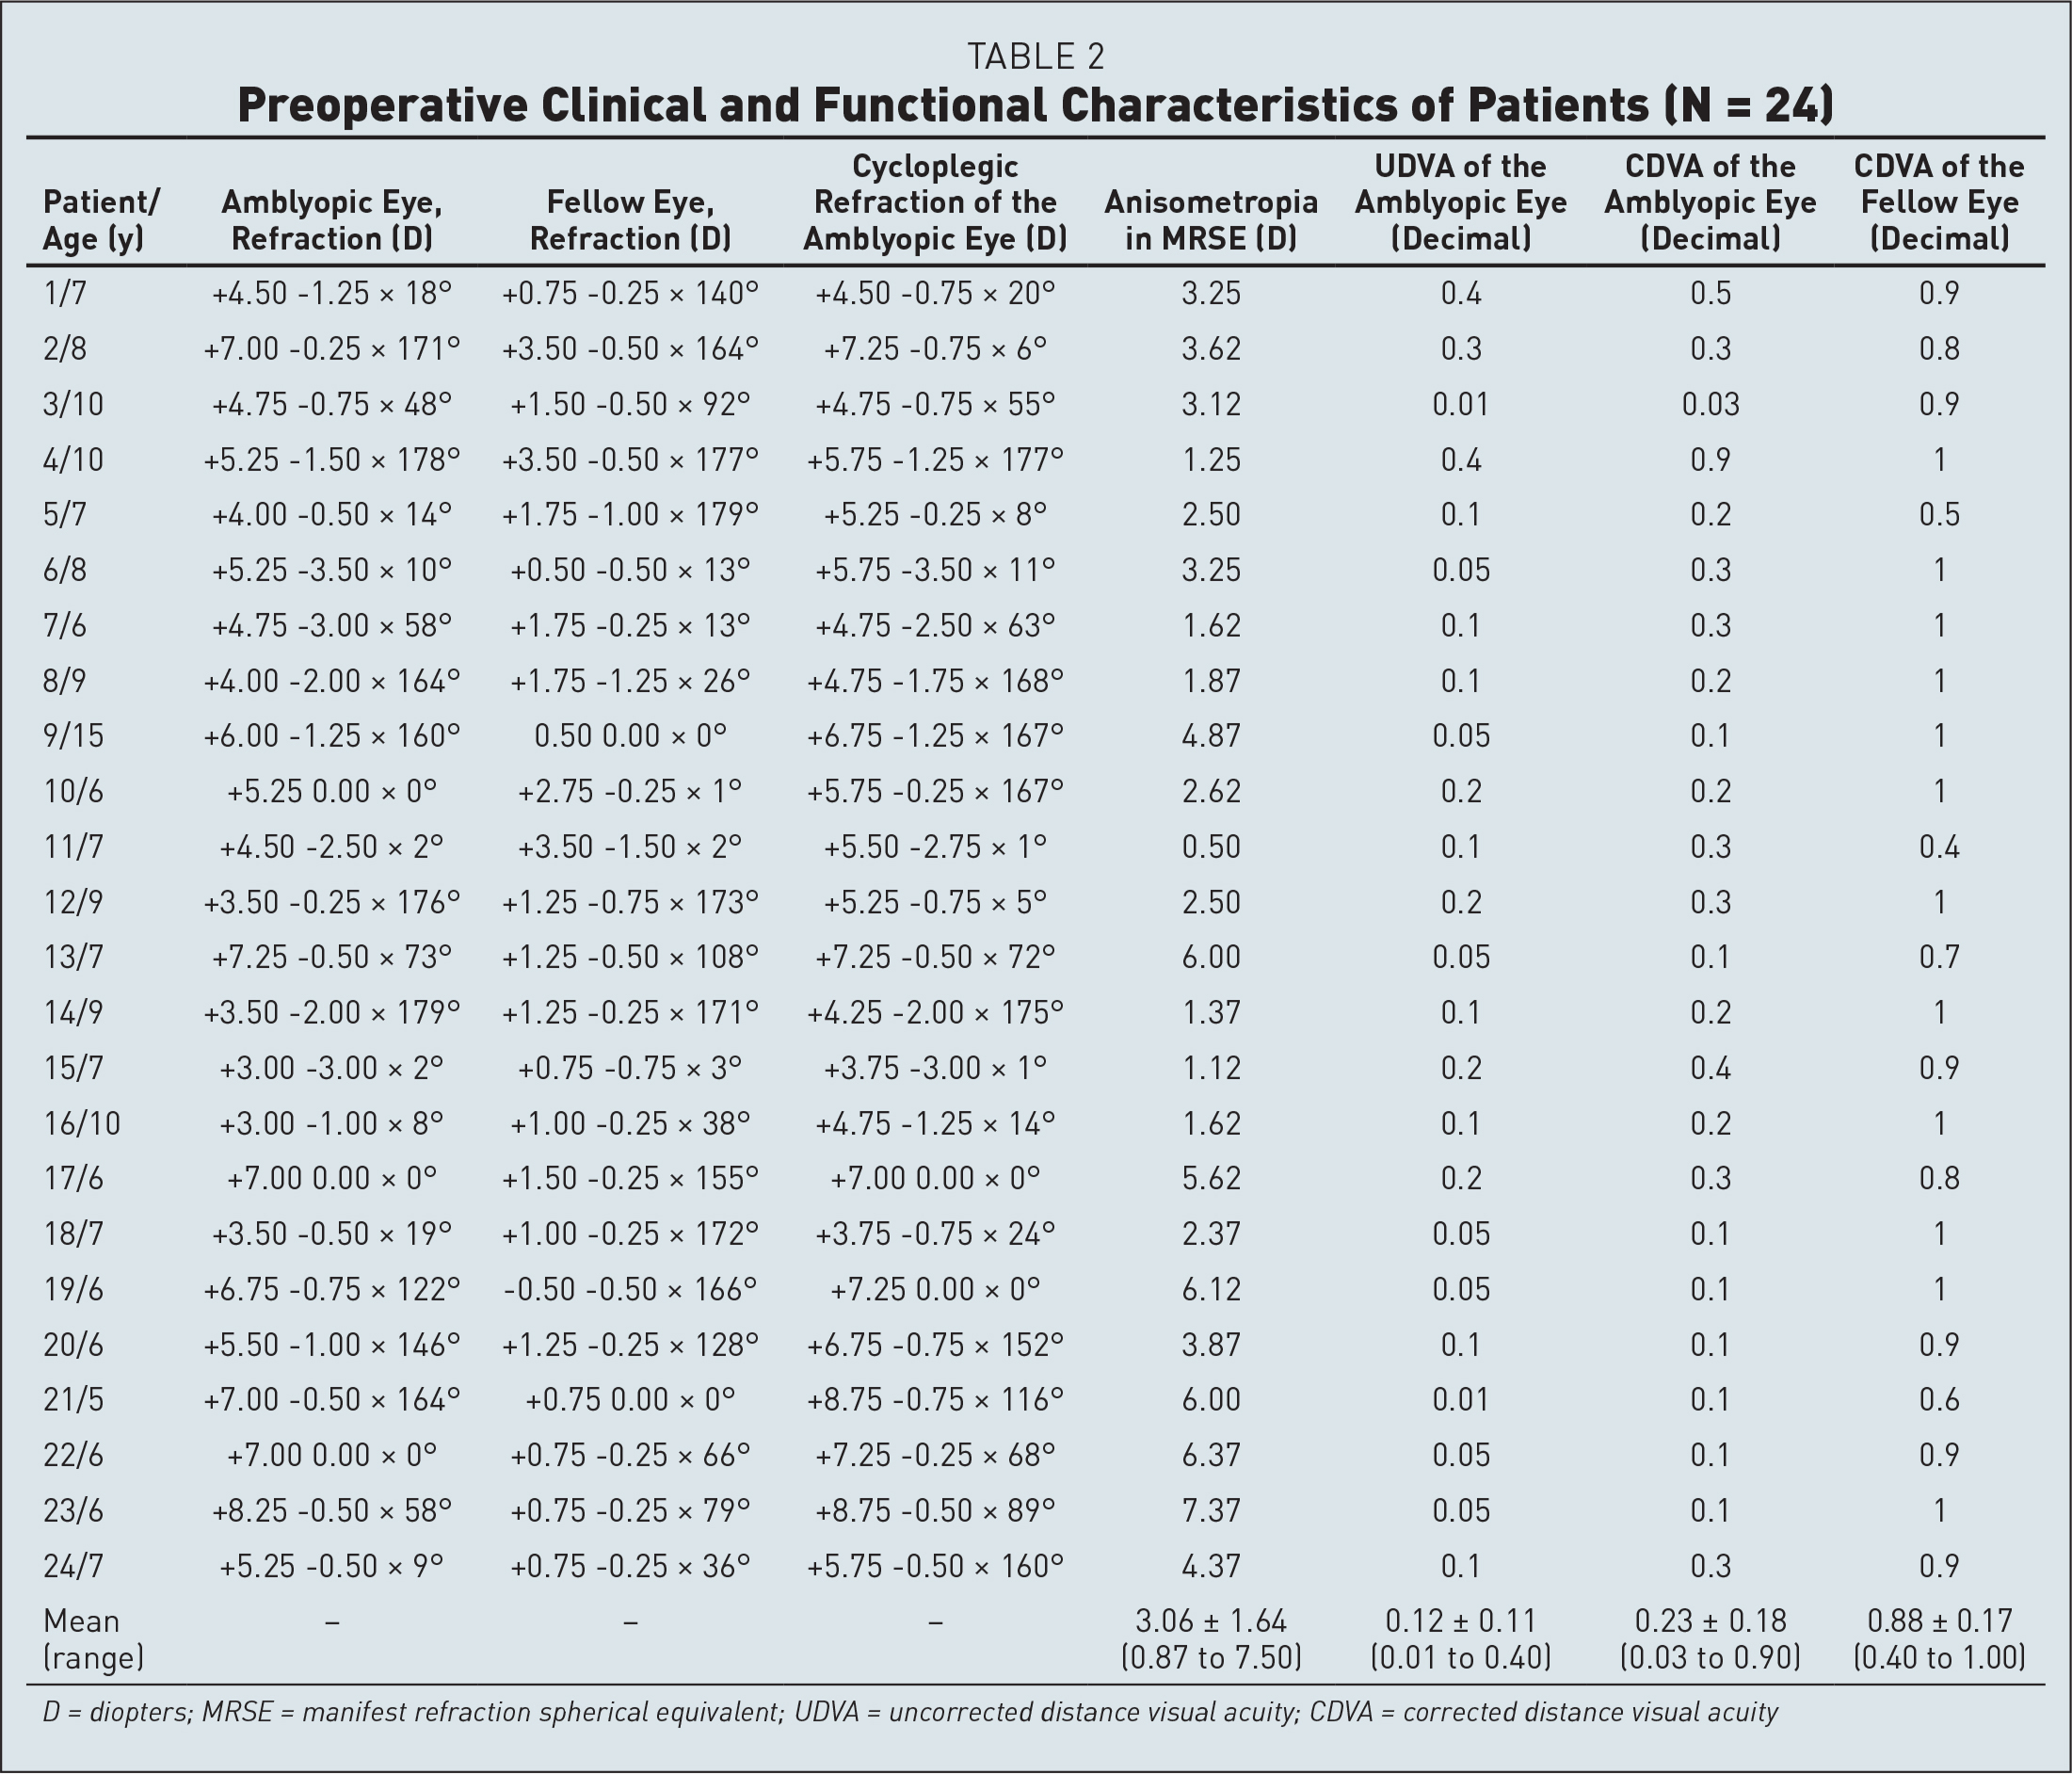 Preoperative Clinical and Functional Characteristics of Patients (N = 24)